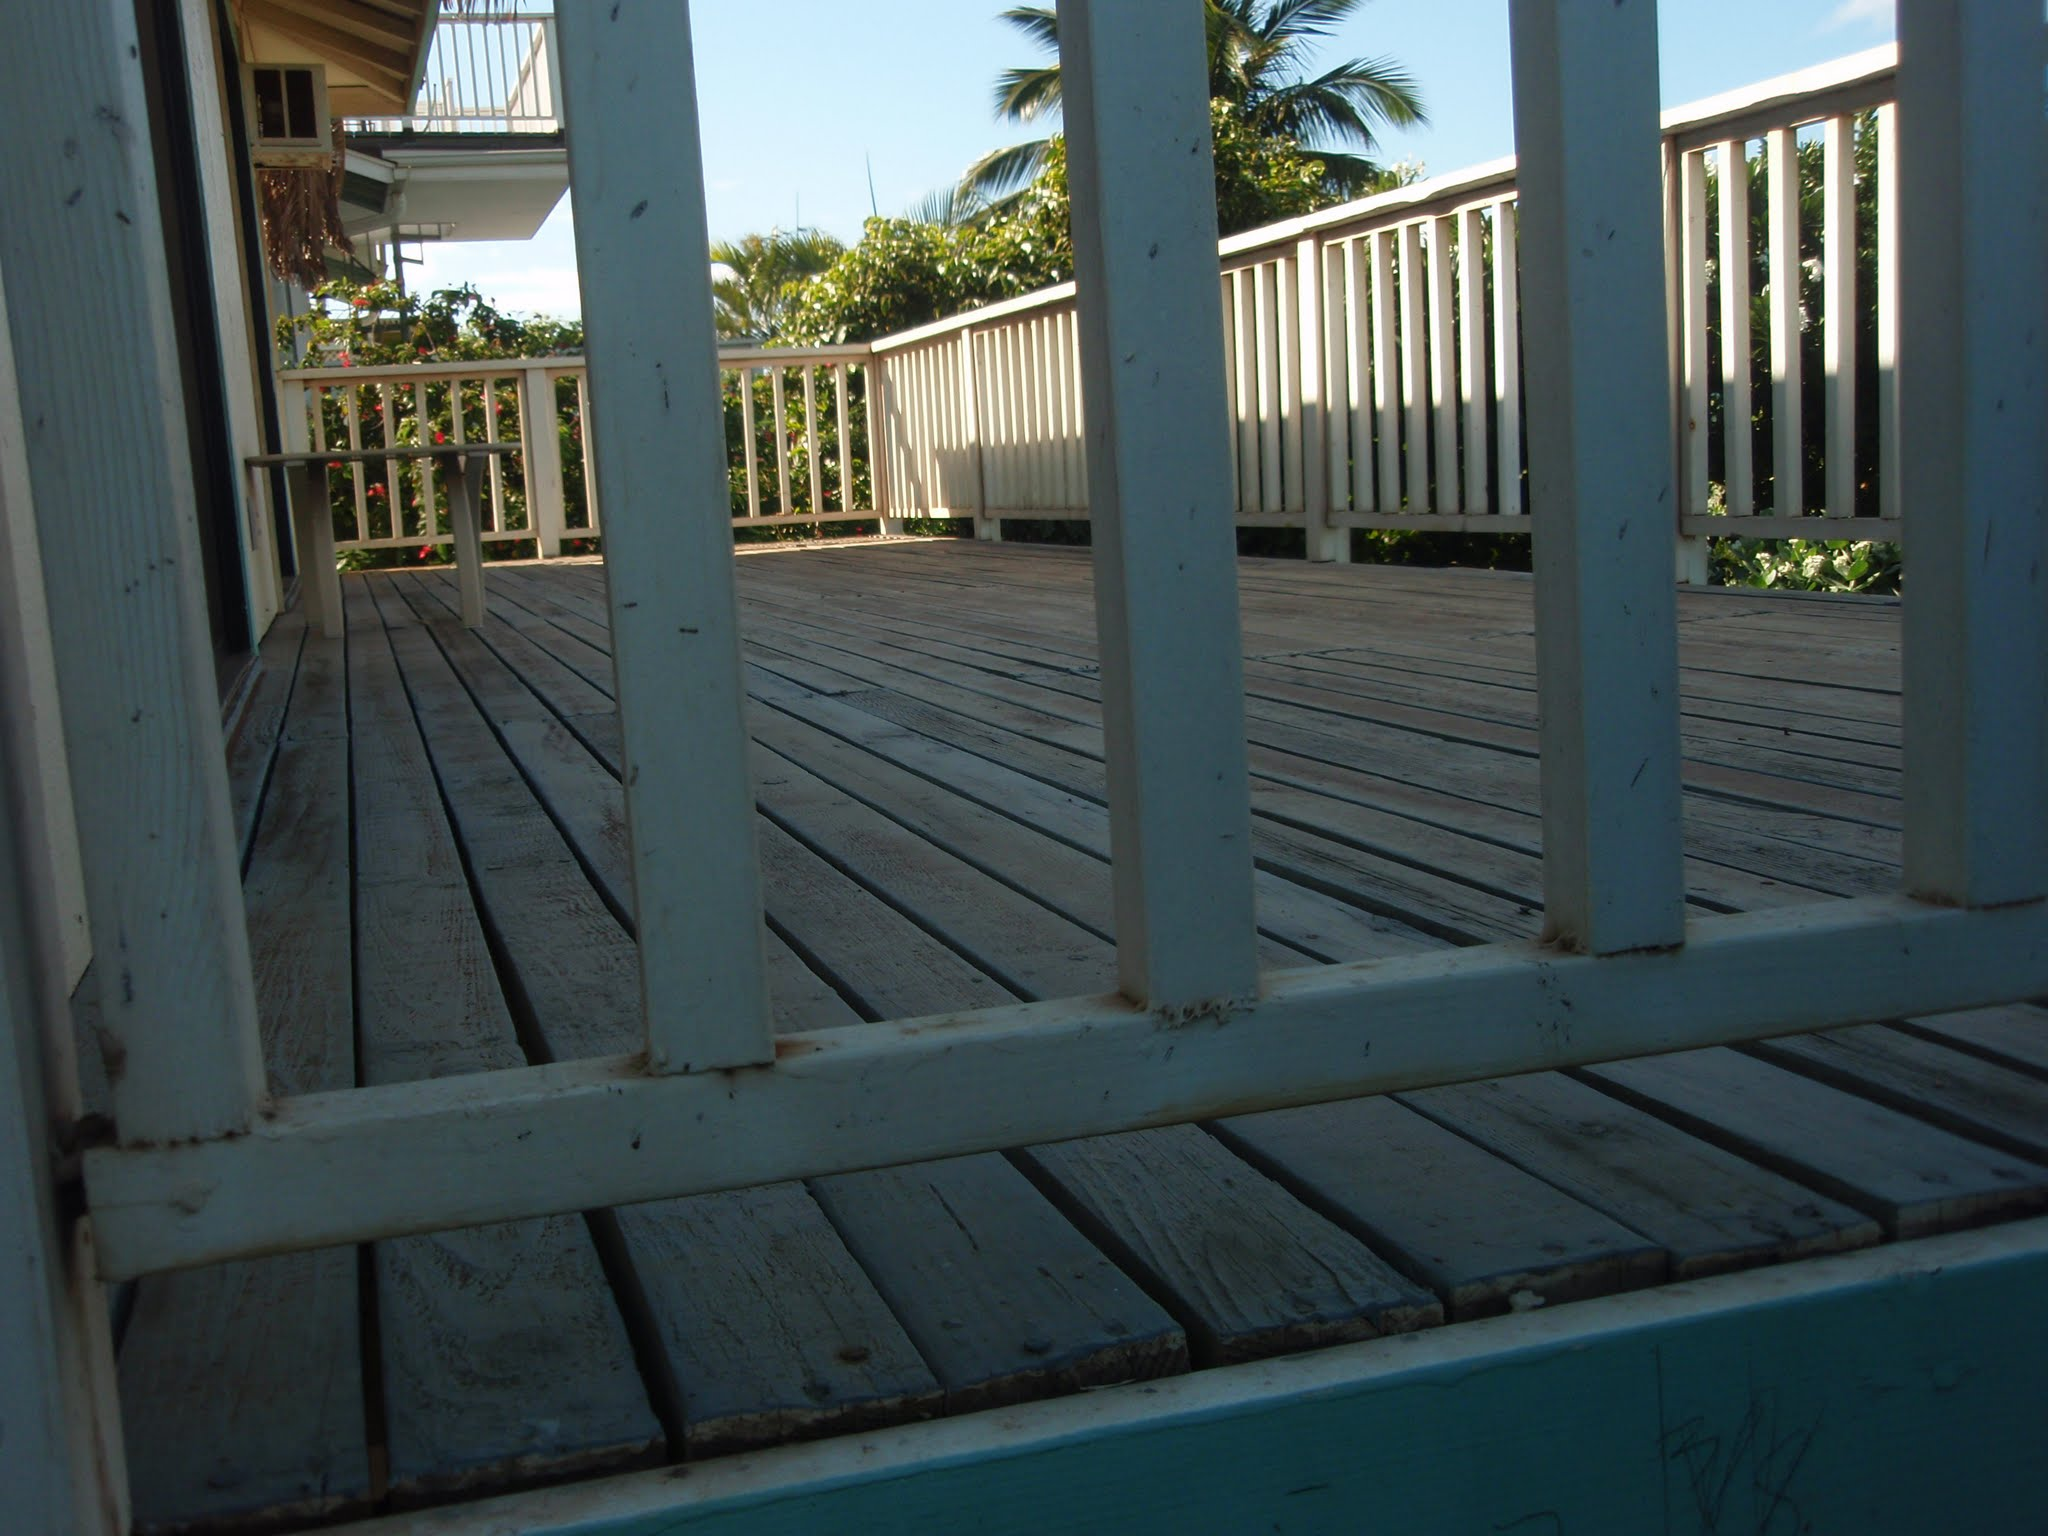 The rear deck again showing the rotted out 2 x 4 decking & railings